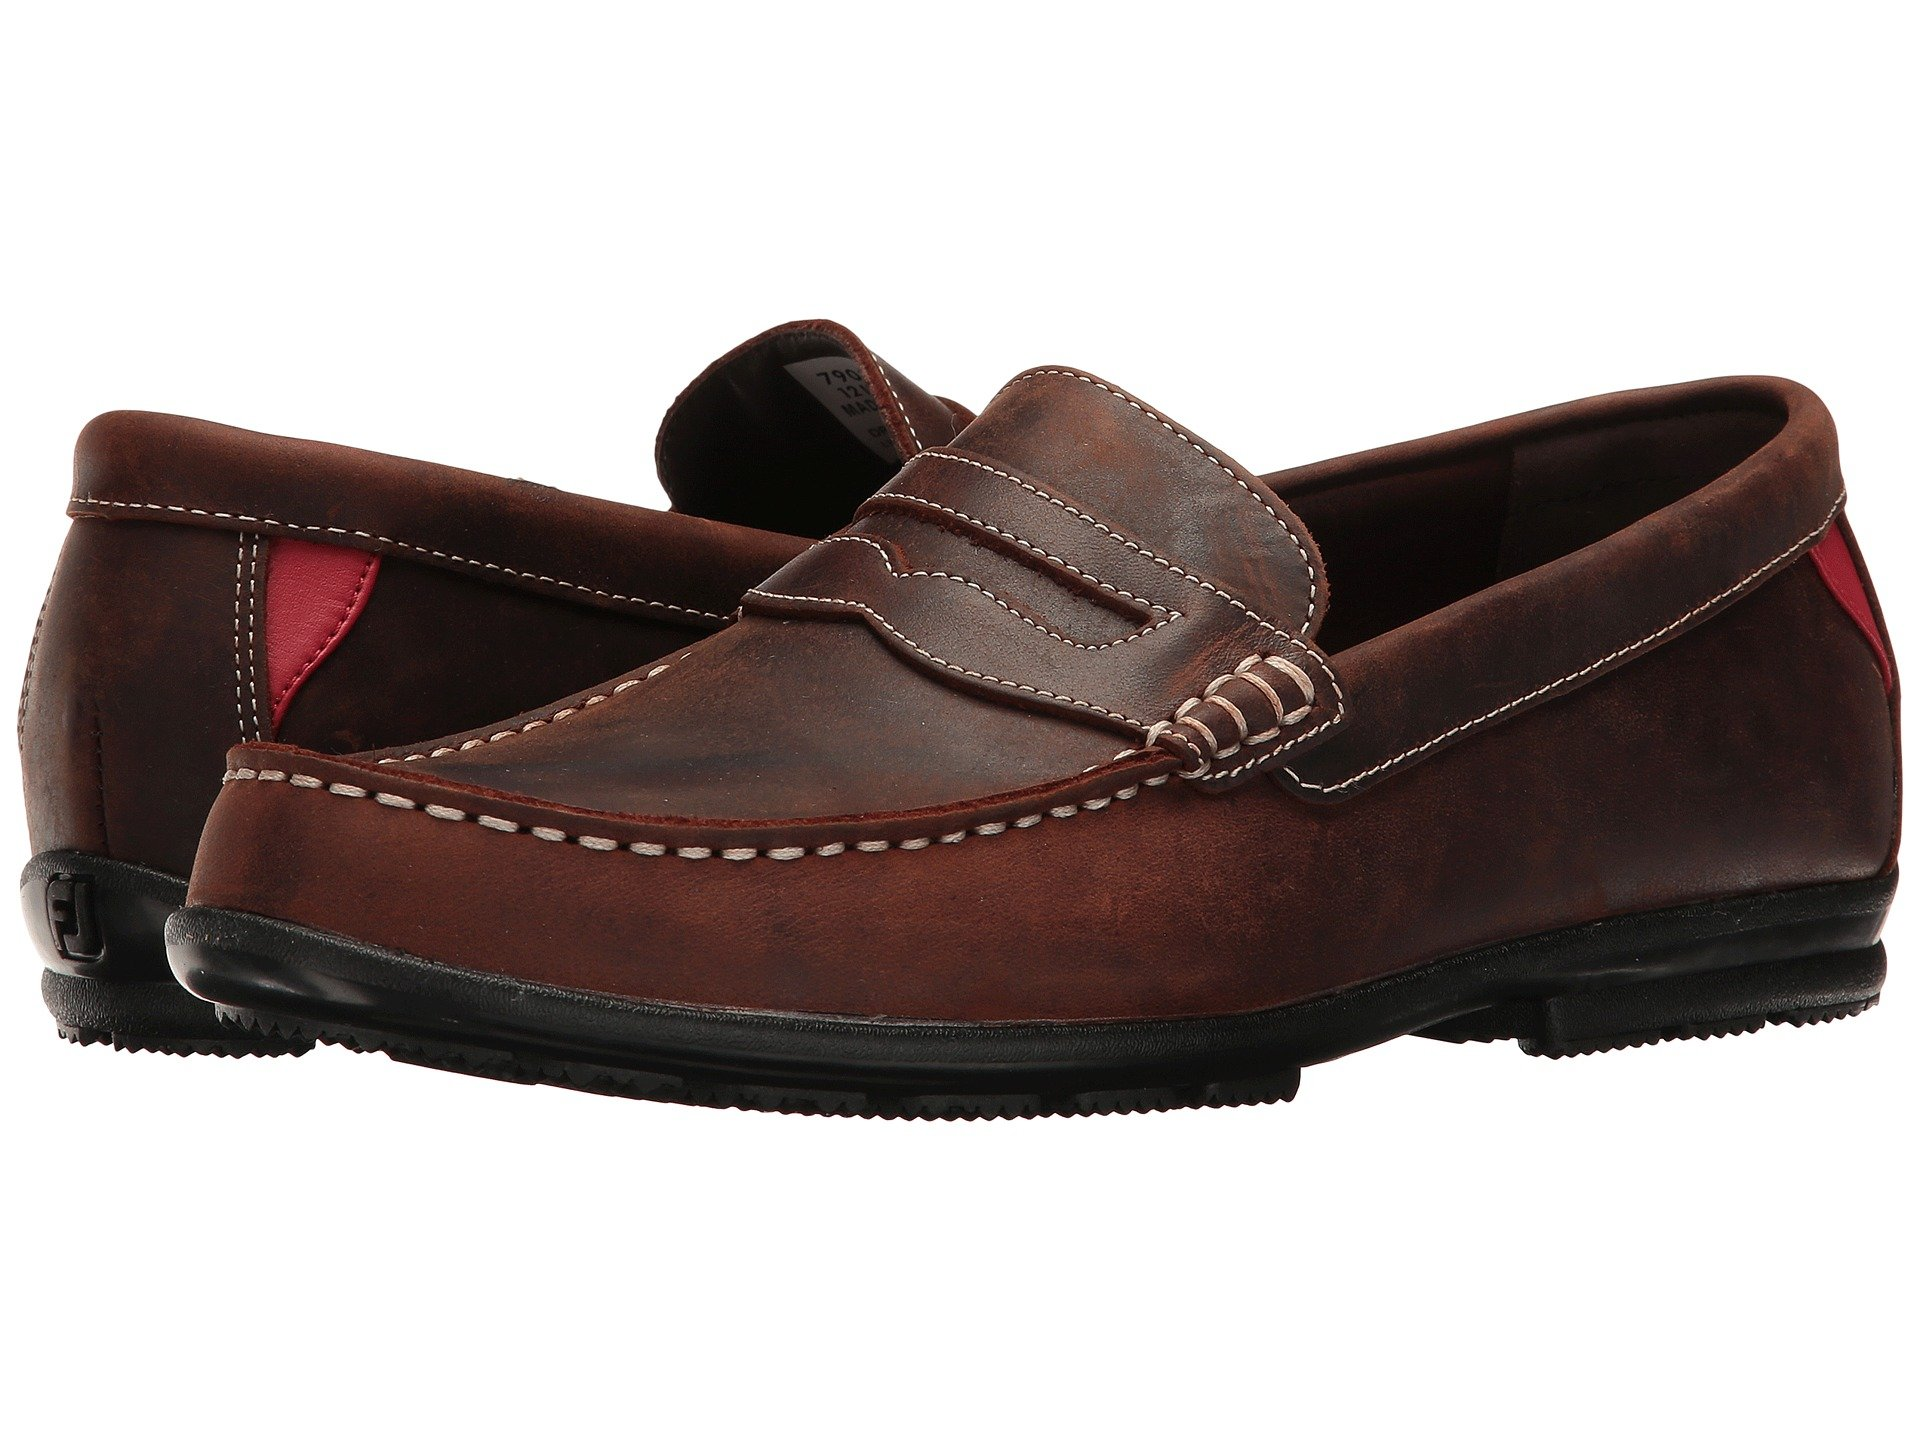 FootJoy Club Casuals Handswen Penny Loafer at Zappos.com